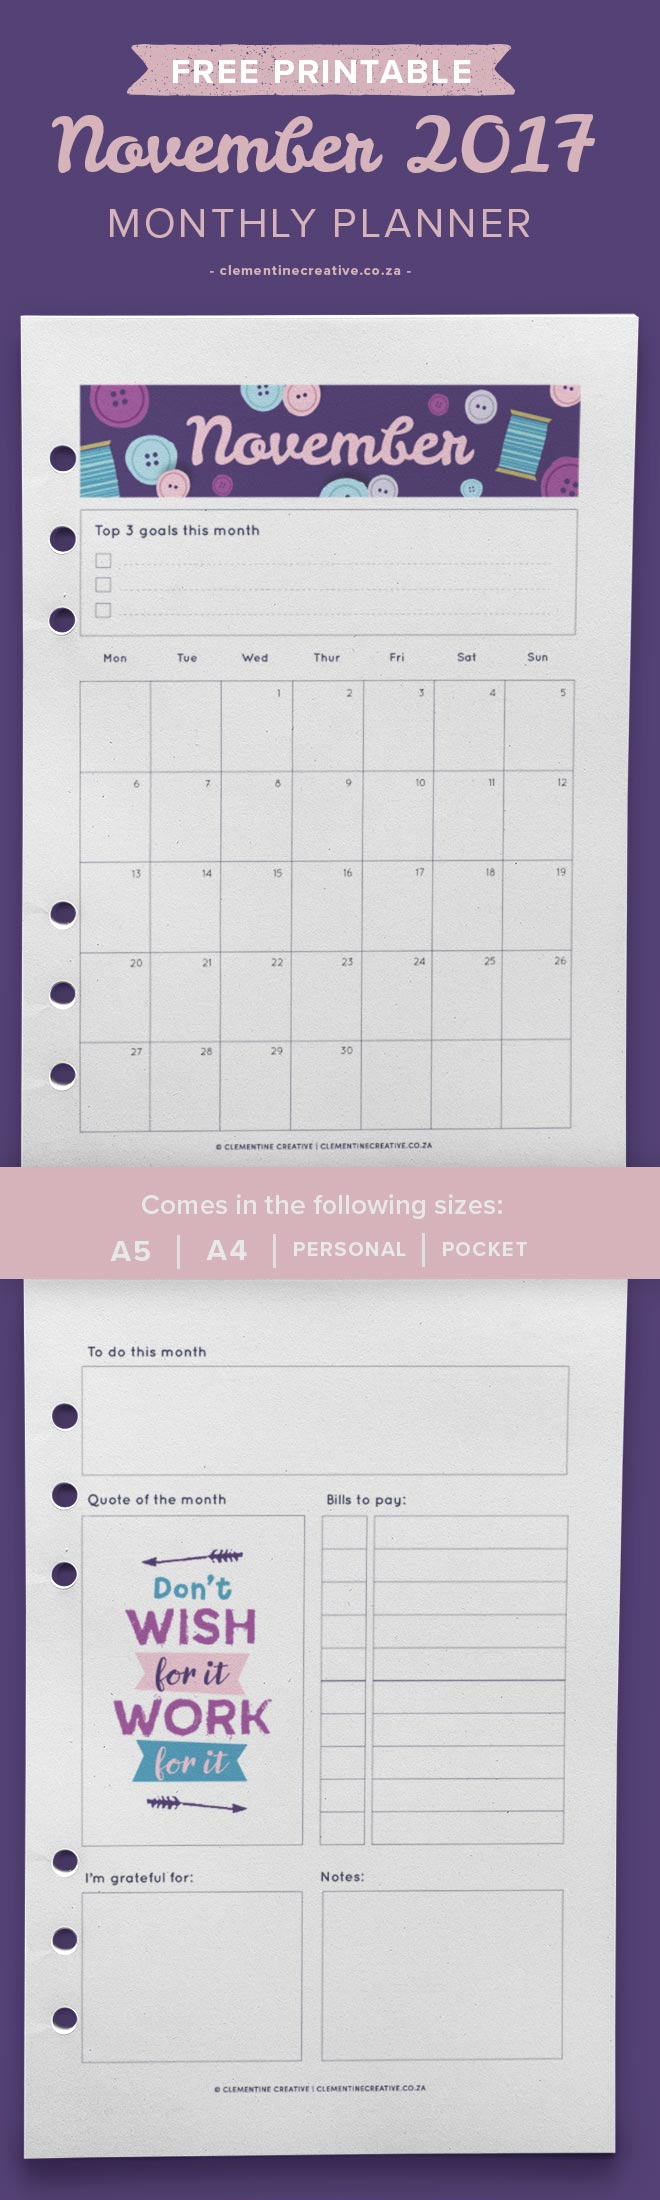 Free printable November calendar and monthly planner. Available in A4, A5, Personal and Pocket sizes. Get yours by signing up!